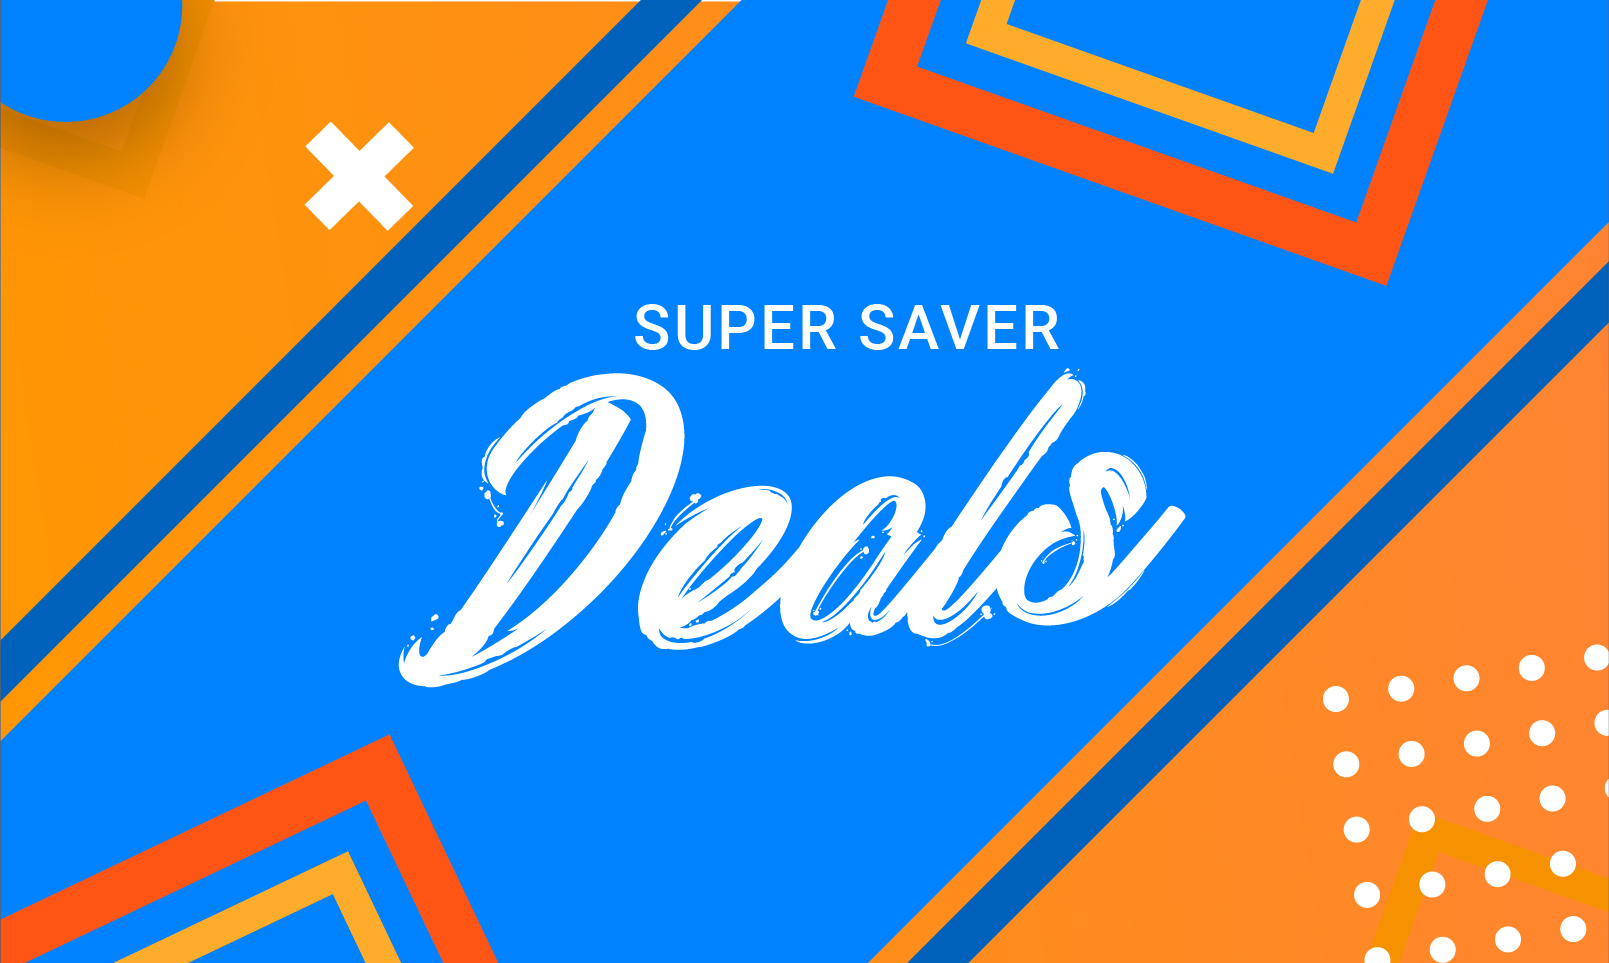 Sangeetha Super Saver Deal Sale